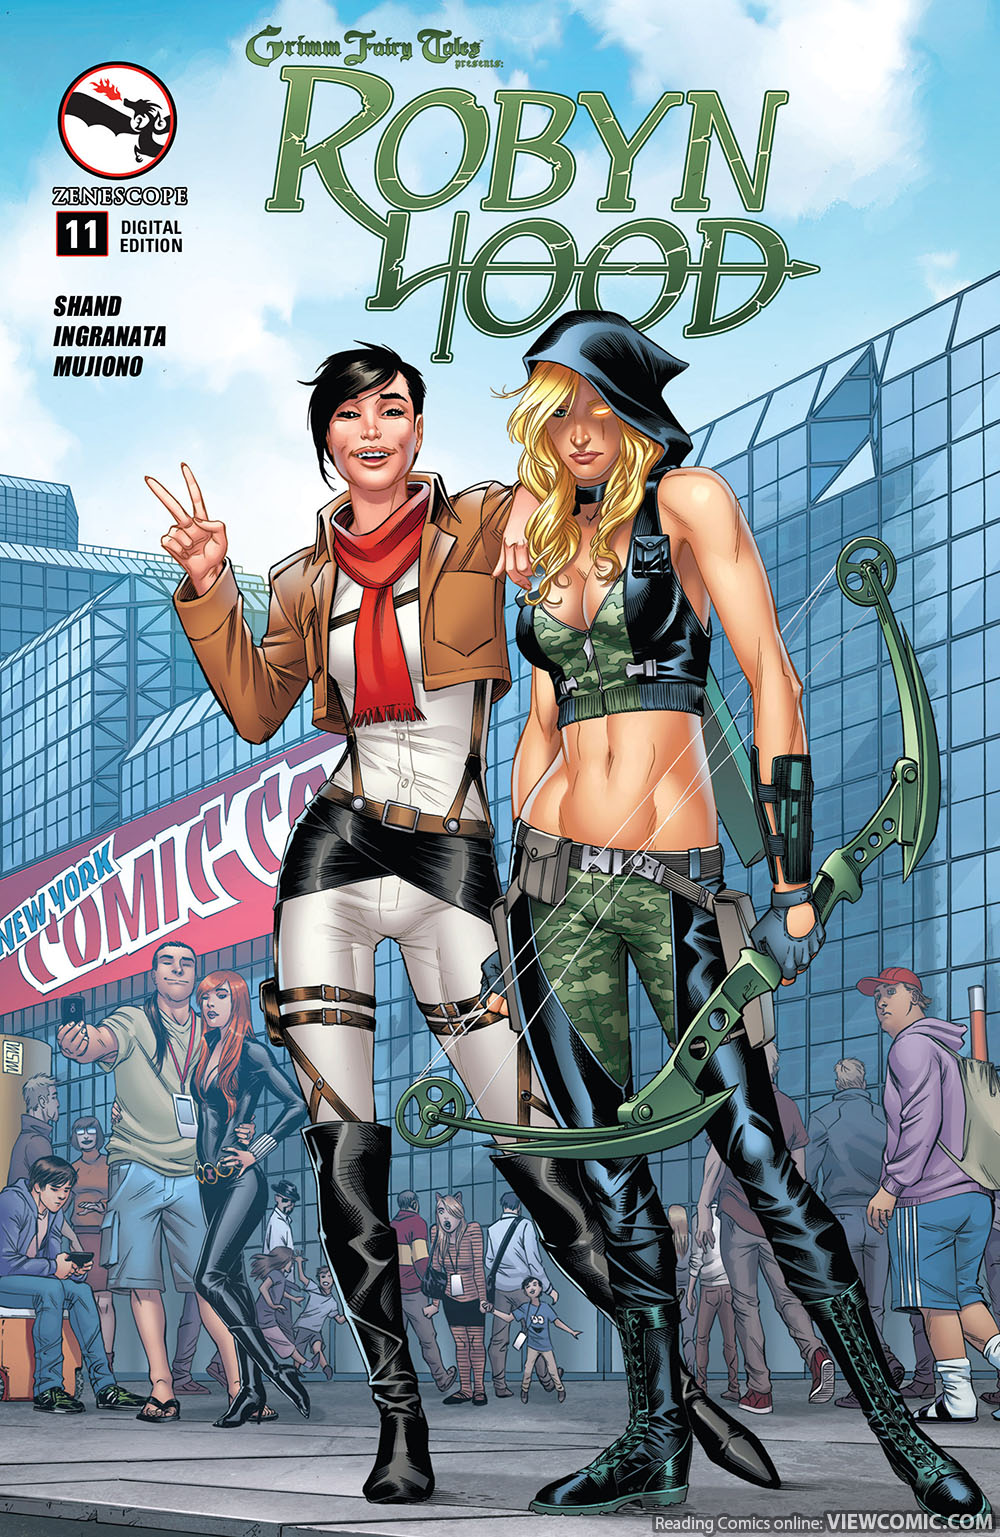 Uncategorized Online Fairy Tales grimm fairy tales presents robyn hood viewcomic reading comics 011 2015